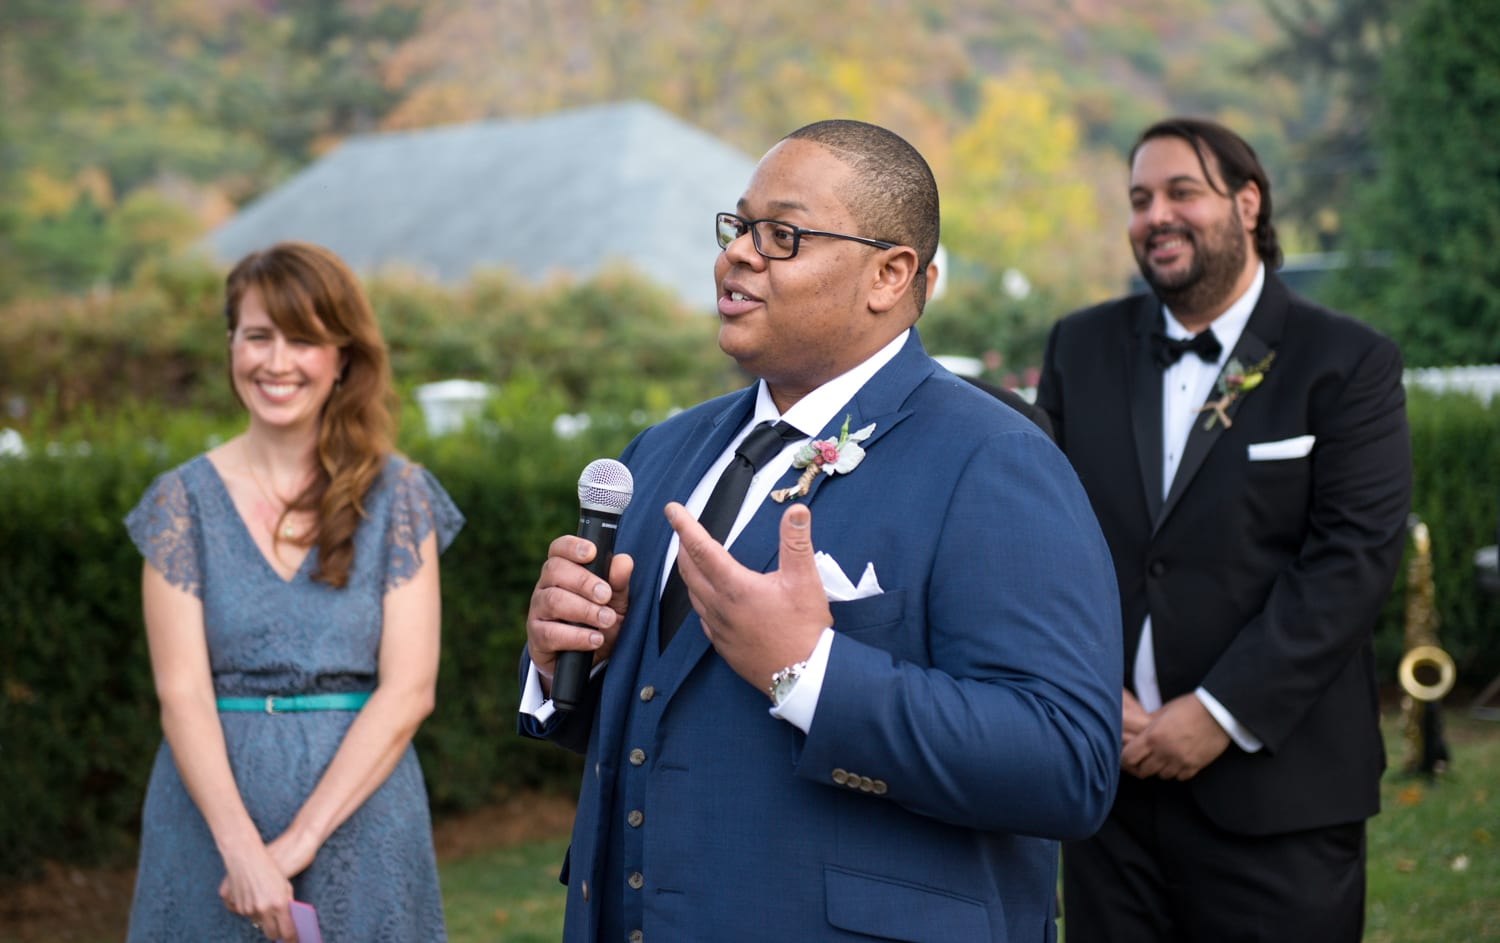 Outdoor wedding ceremony at Highlands Wedding in Garrison, NY